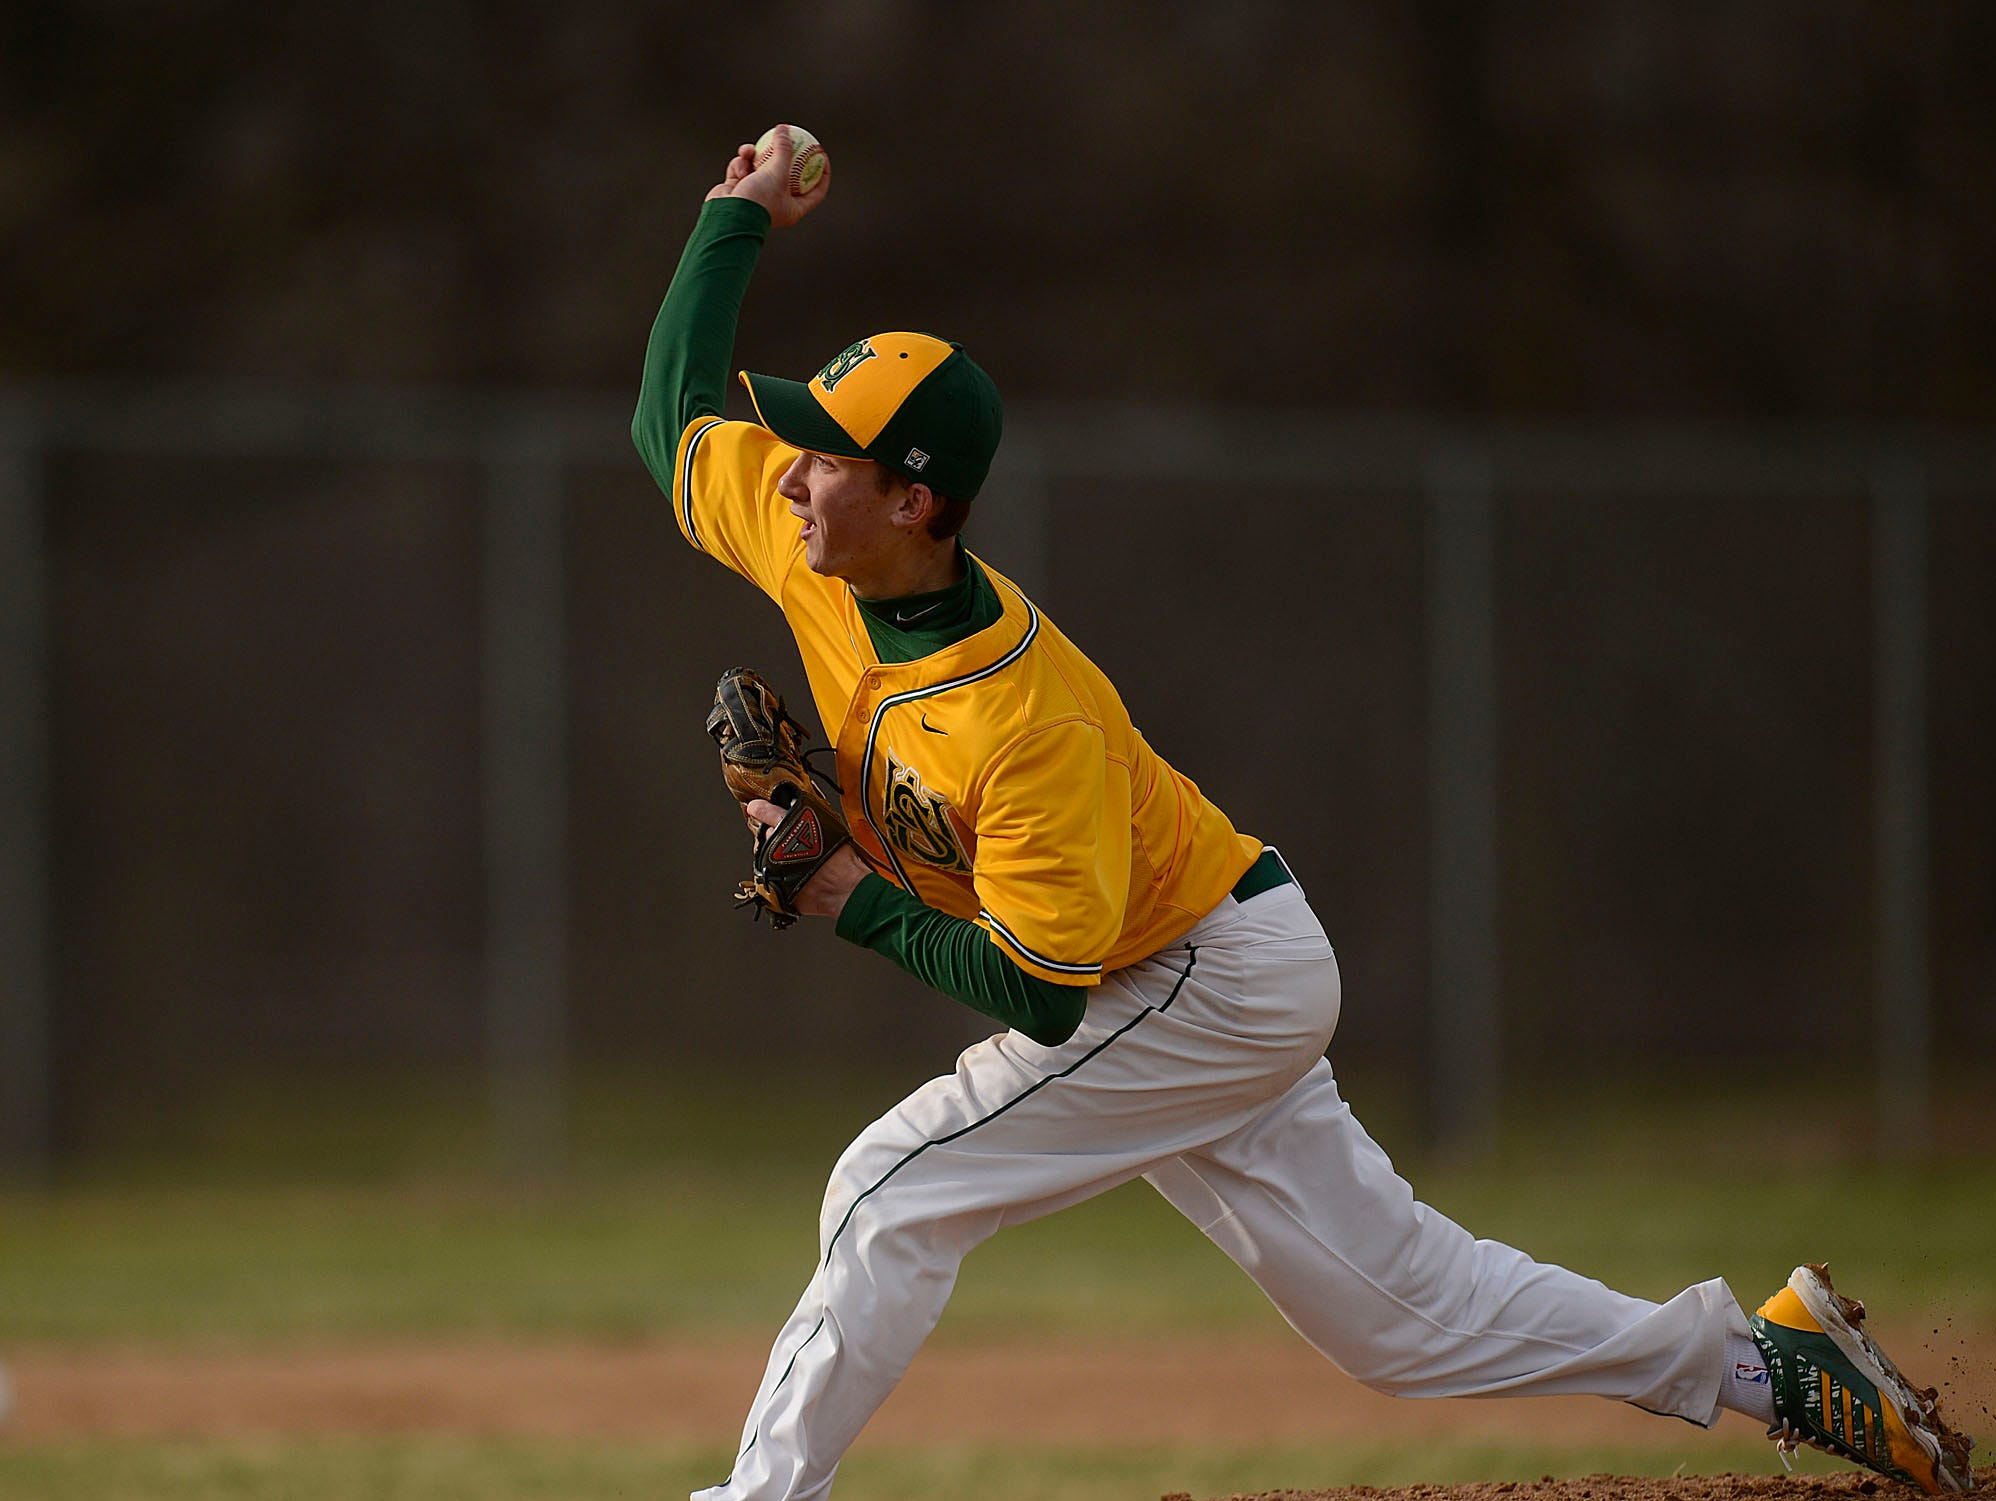 Ashwaubenon pitcher Turner Wittig (3) gets ready to fire a pitch during Tuesday's baseball game against De Pere at Ashwaubomay Park in Ashwaubenon.